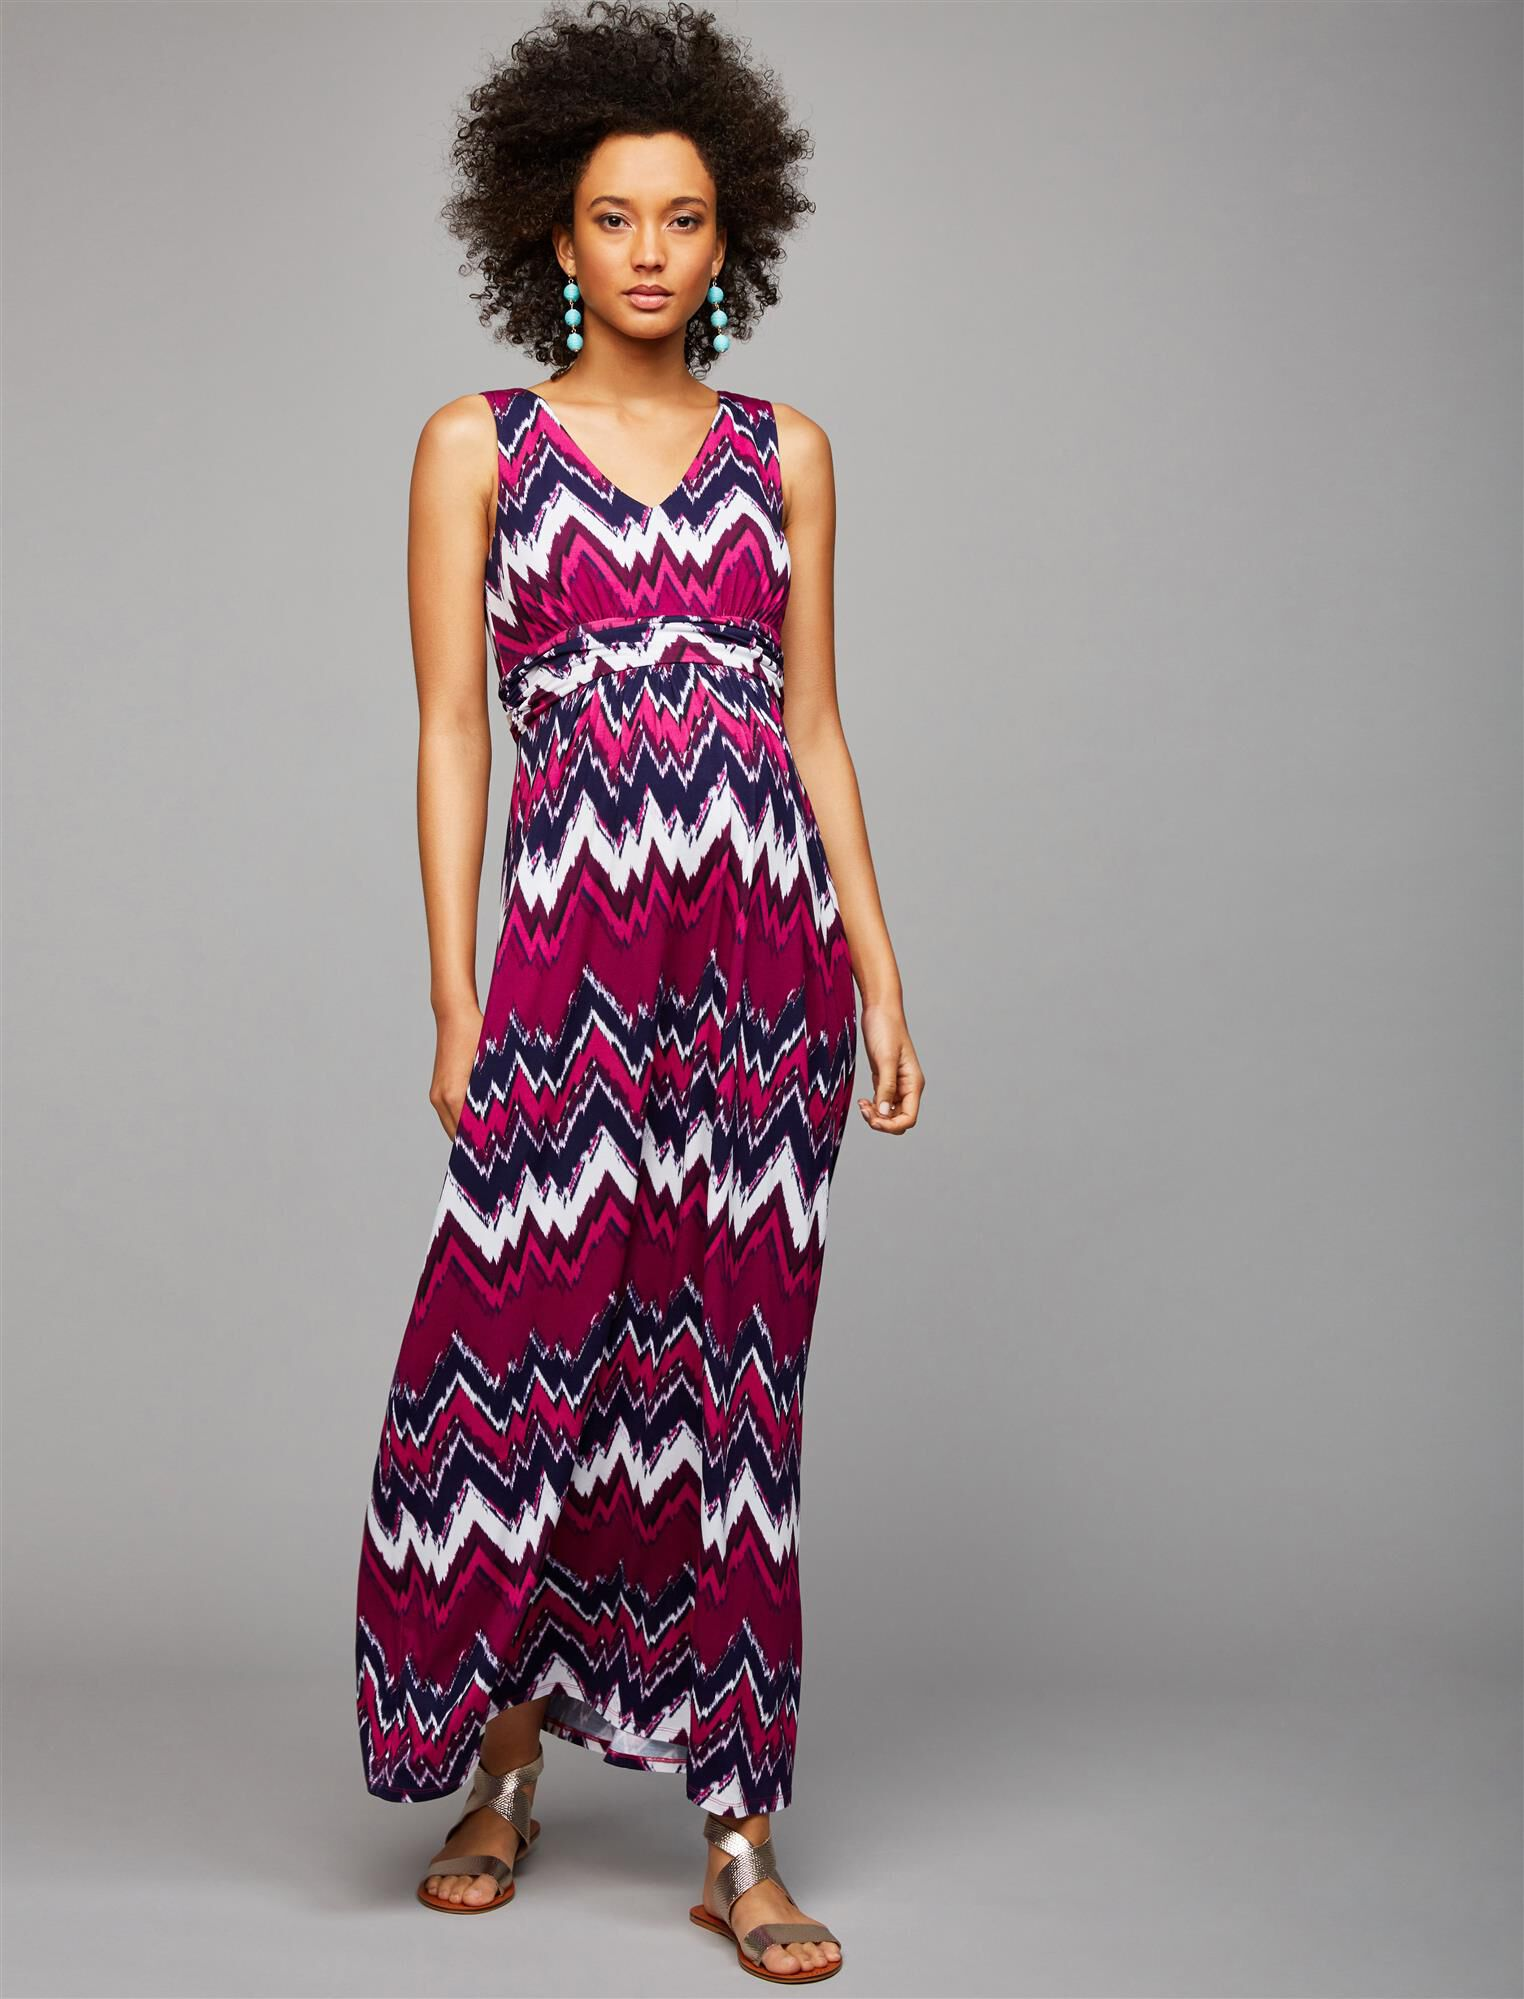 Sleeveless Ruched Waist Maternity Maxi Dress- Pink Chevron